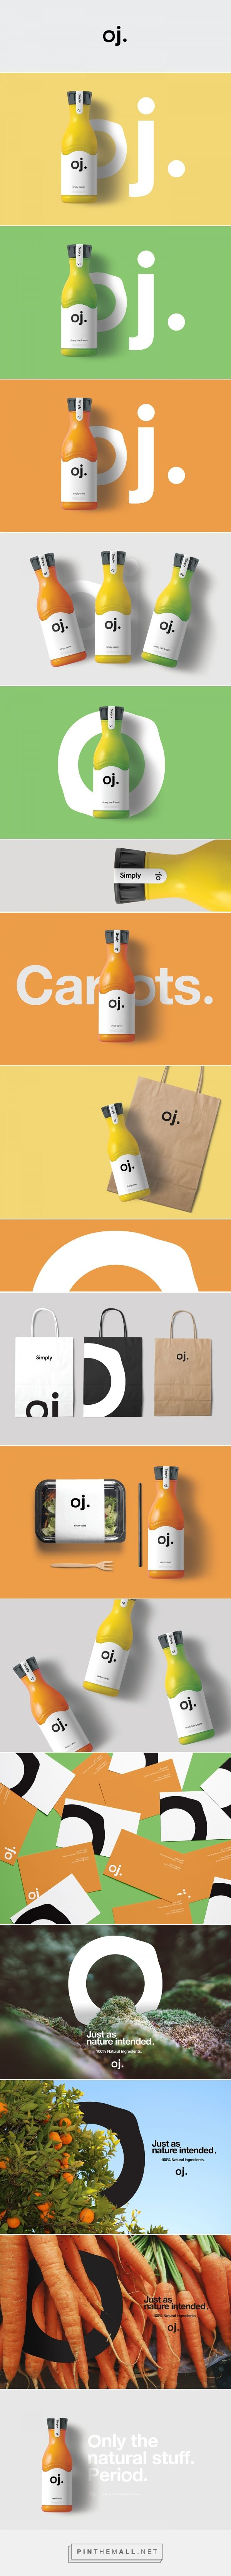 1763 best Visual Identity images on Pinterest